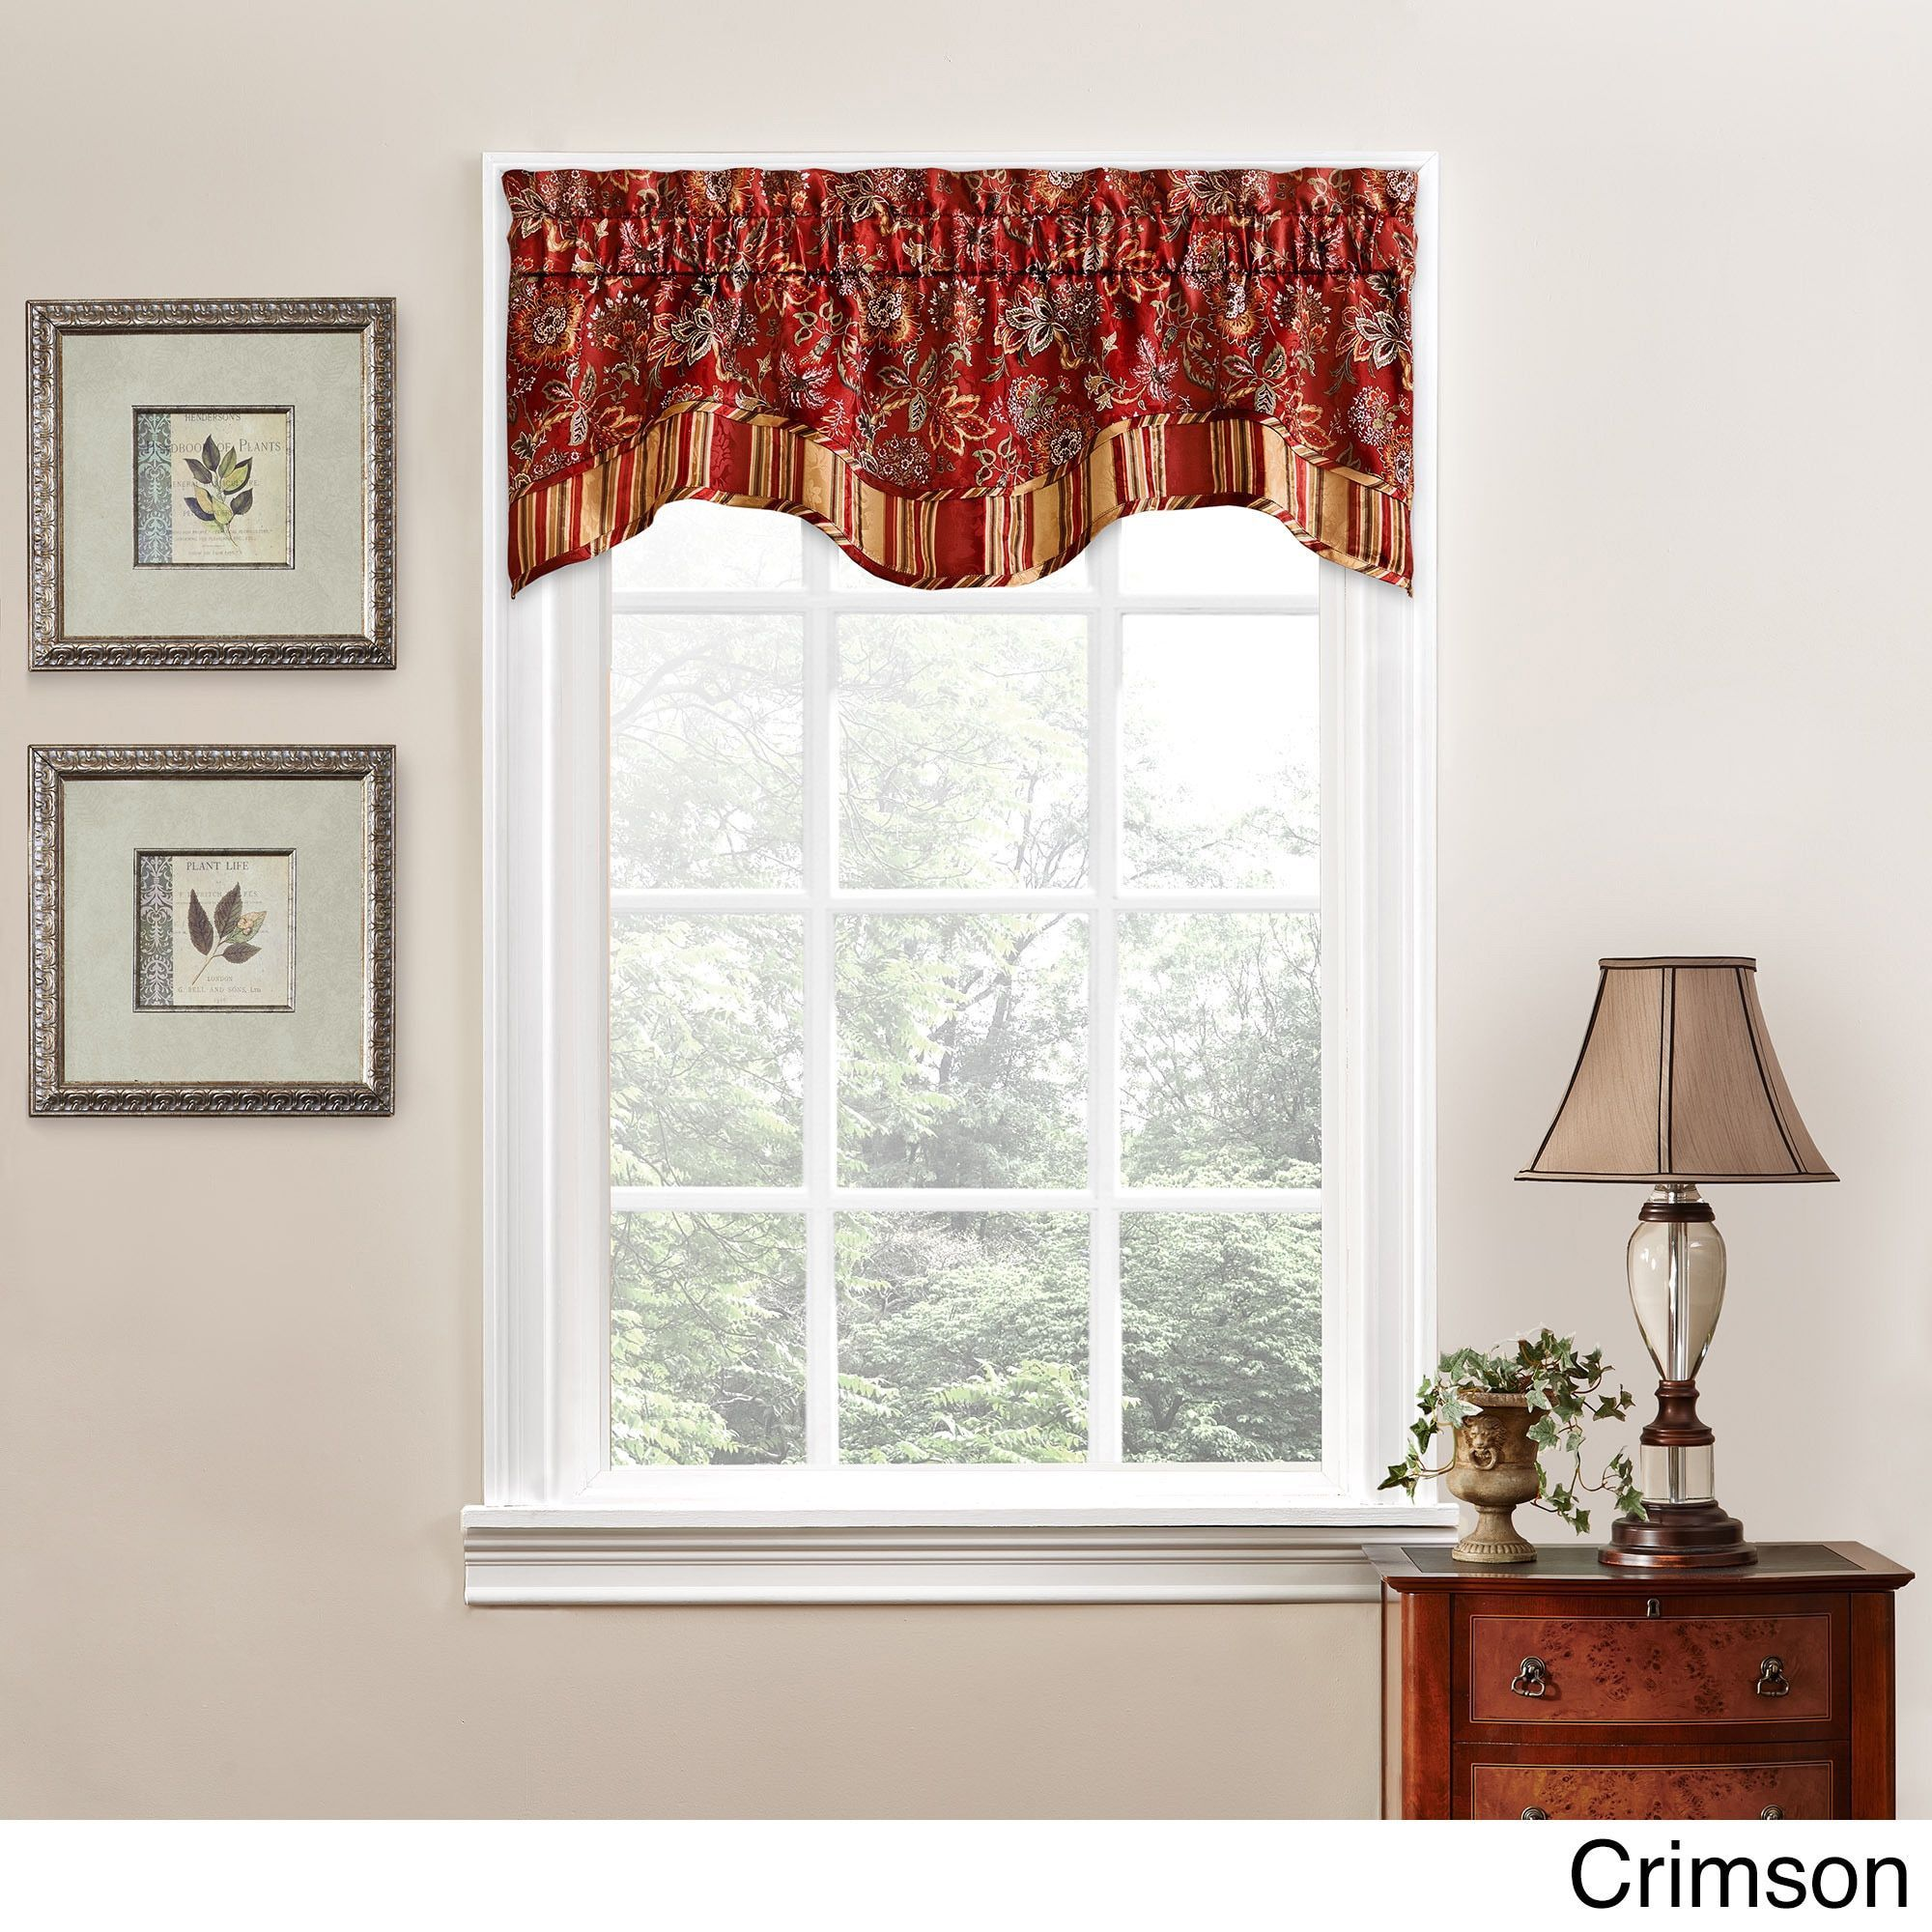 Traditions By Waverly Navarra Floral Window Valance Small Window Curtains Valance Window Treatments Valance #tailored #valances #for #living #room